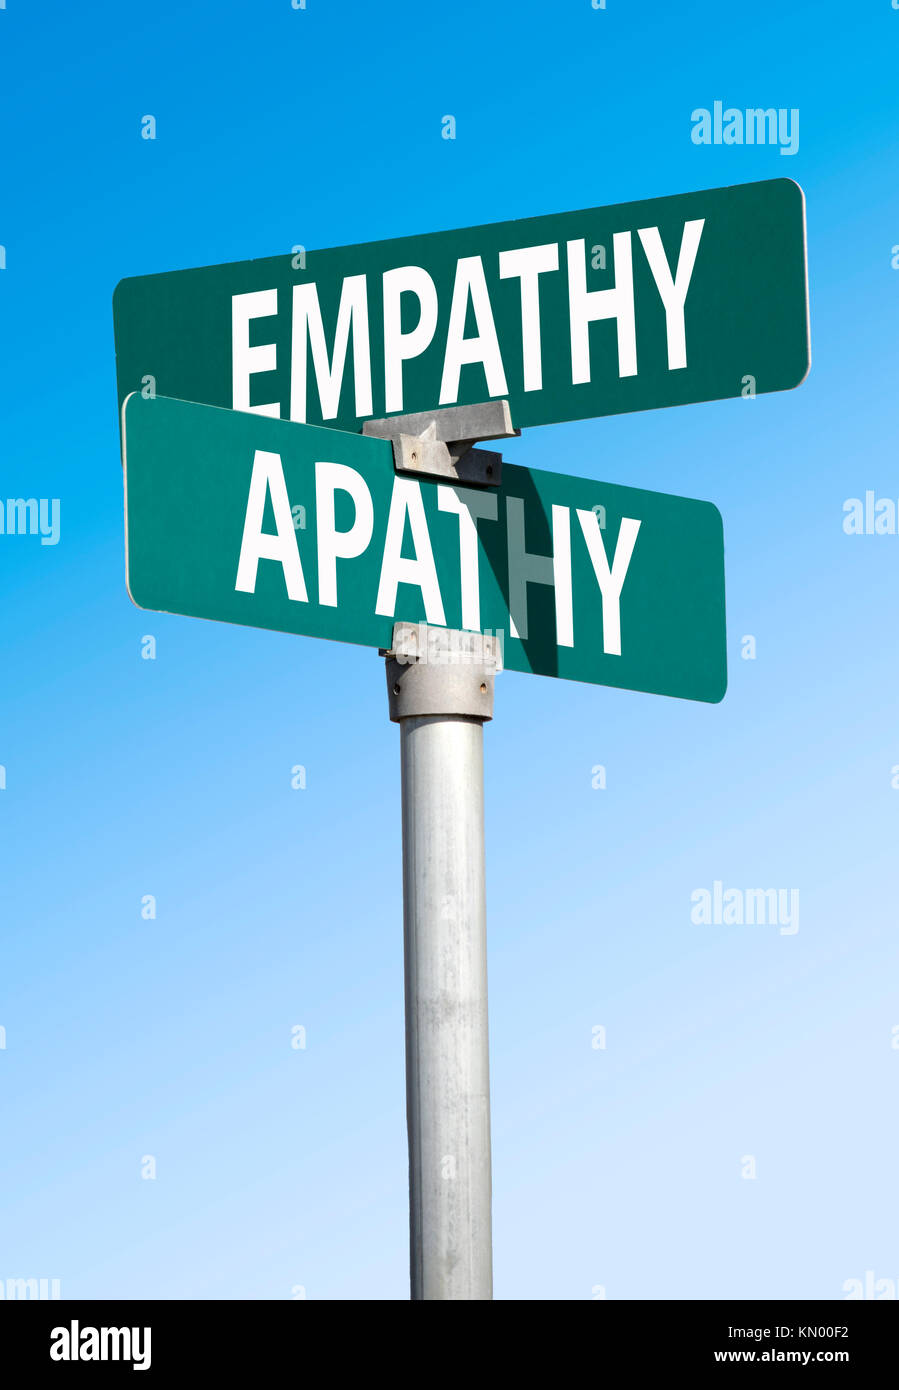 empathy and apathy sign - Stock Image